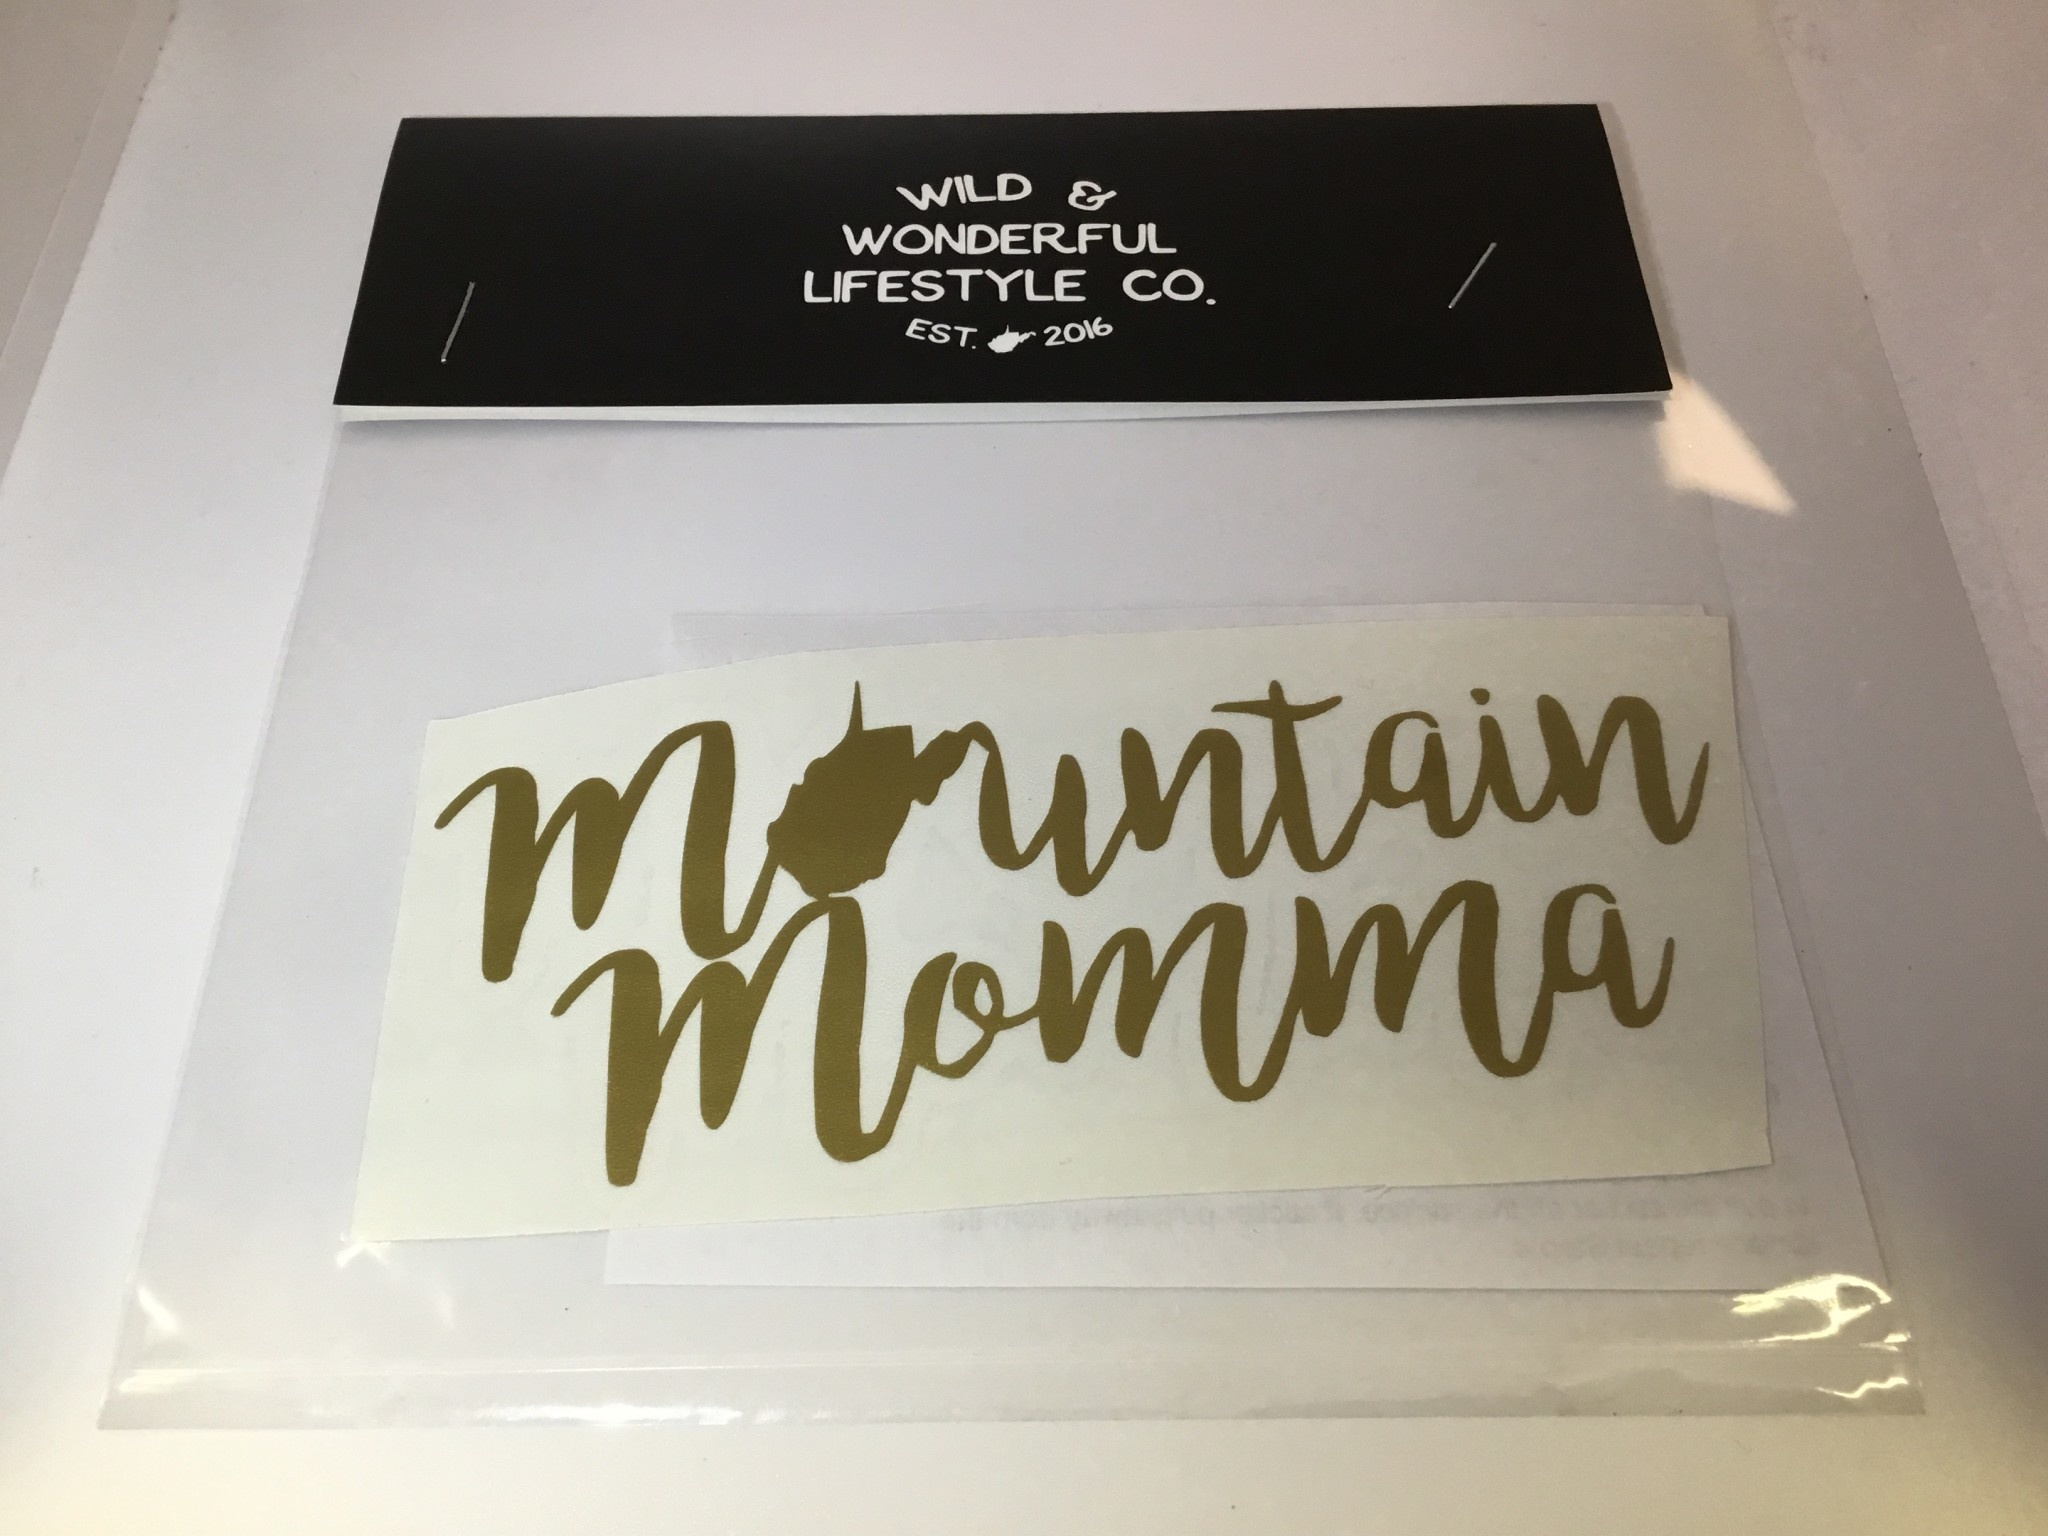 Wild & Wonderful Lifestyle Company WV Mountain Mama Decal